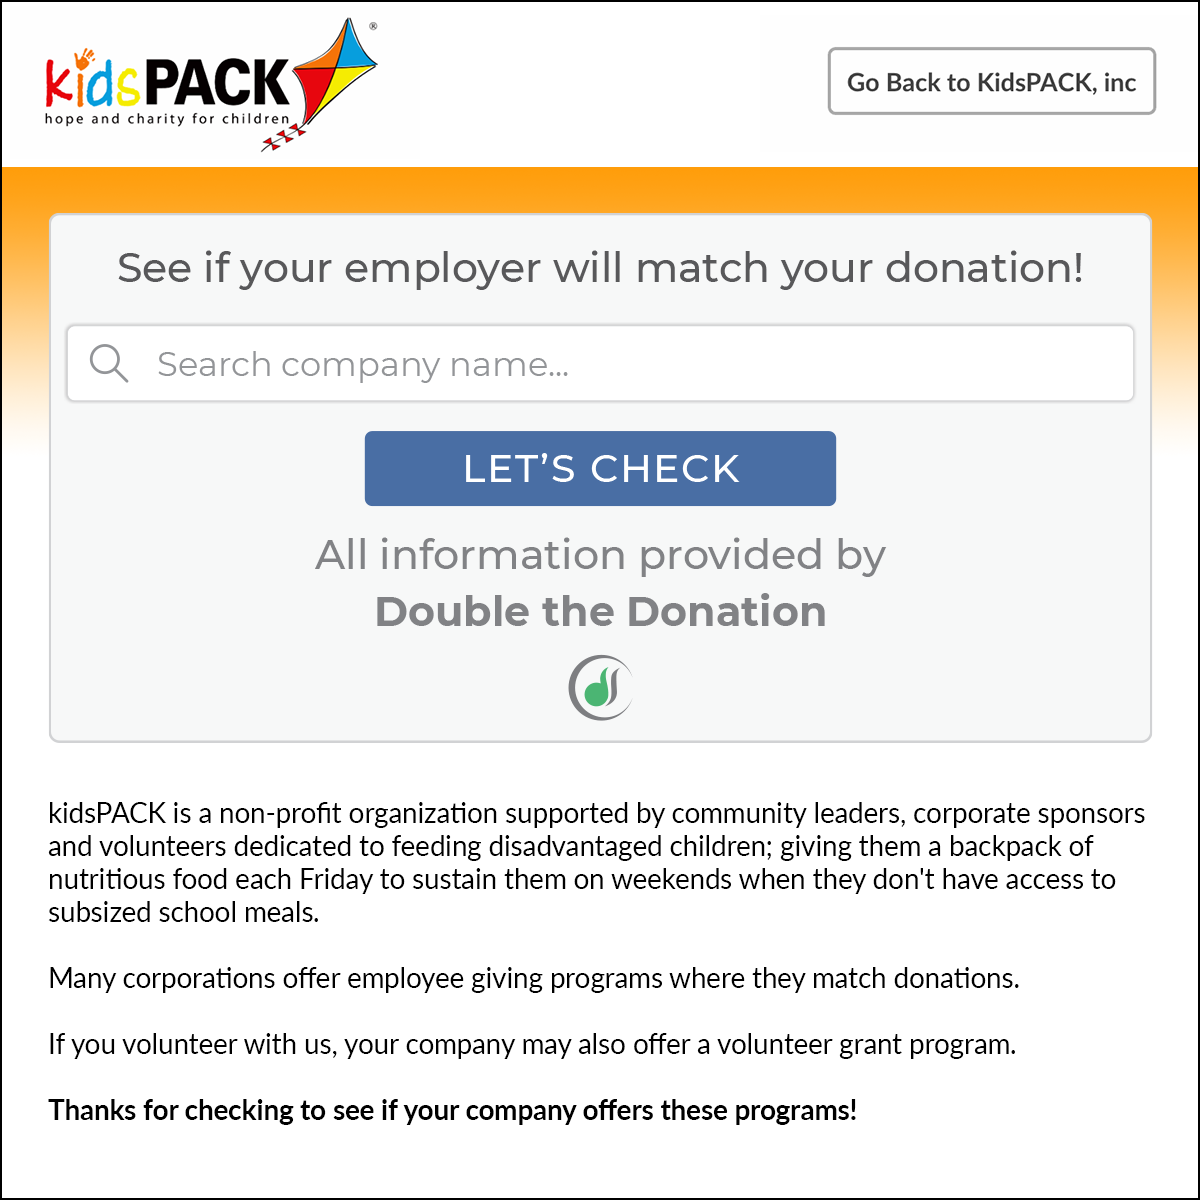 kidsPACK does a great job promoting matching gifts.